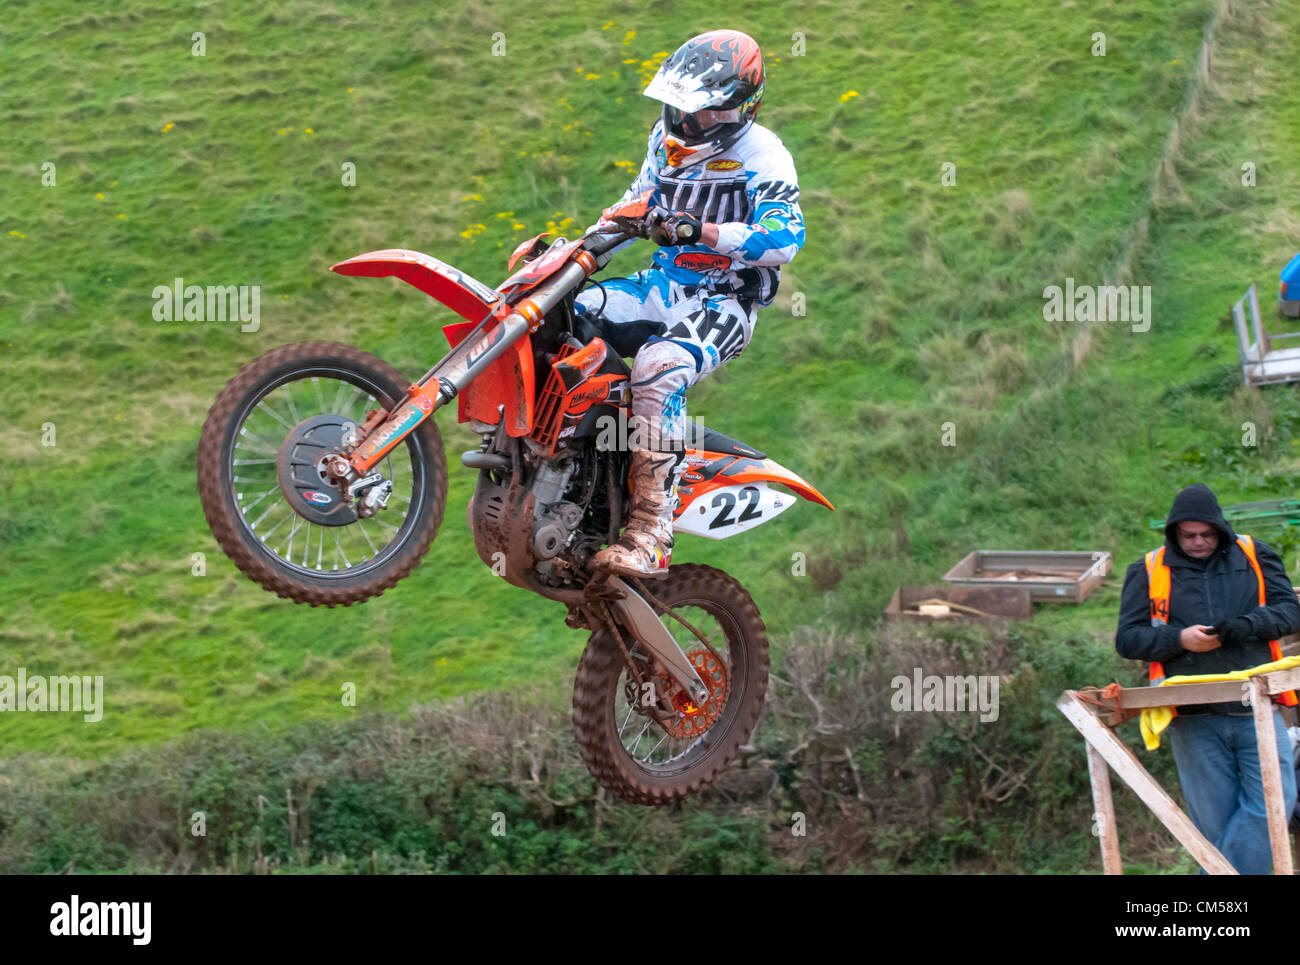 MAXXIS ACU MX1 British Champion Kevin Strijbos racing in race 1 of the MAXXIS British Motocross Championship MX - Stock Image